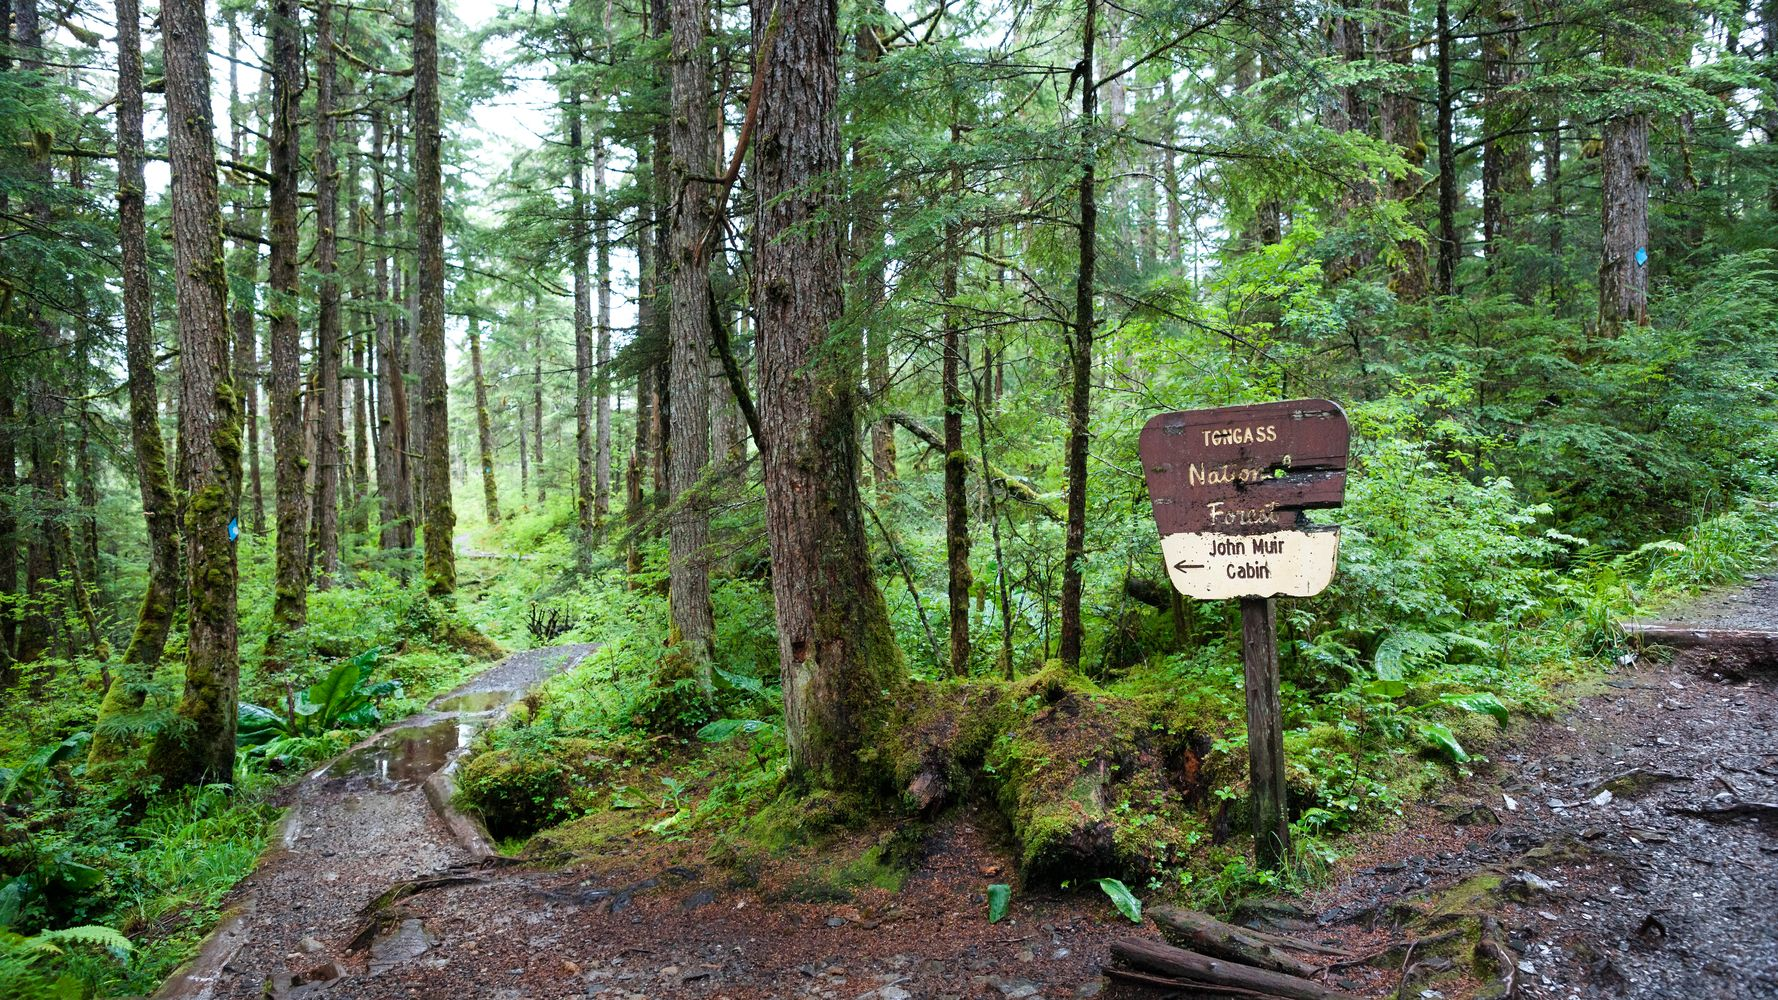 Trump Guts Protections For Alaska Forest That His Hero Theodore Roosevelt Established